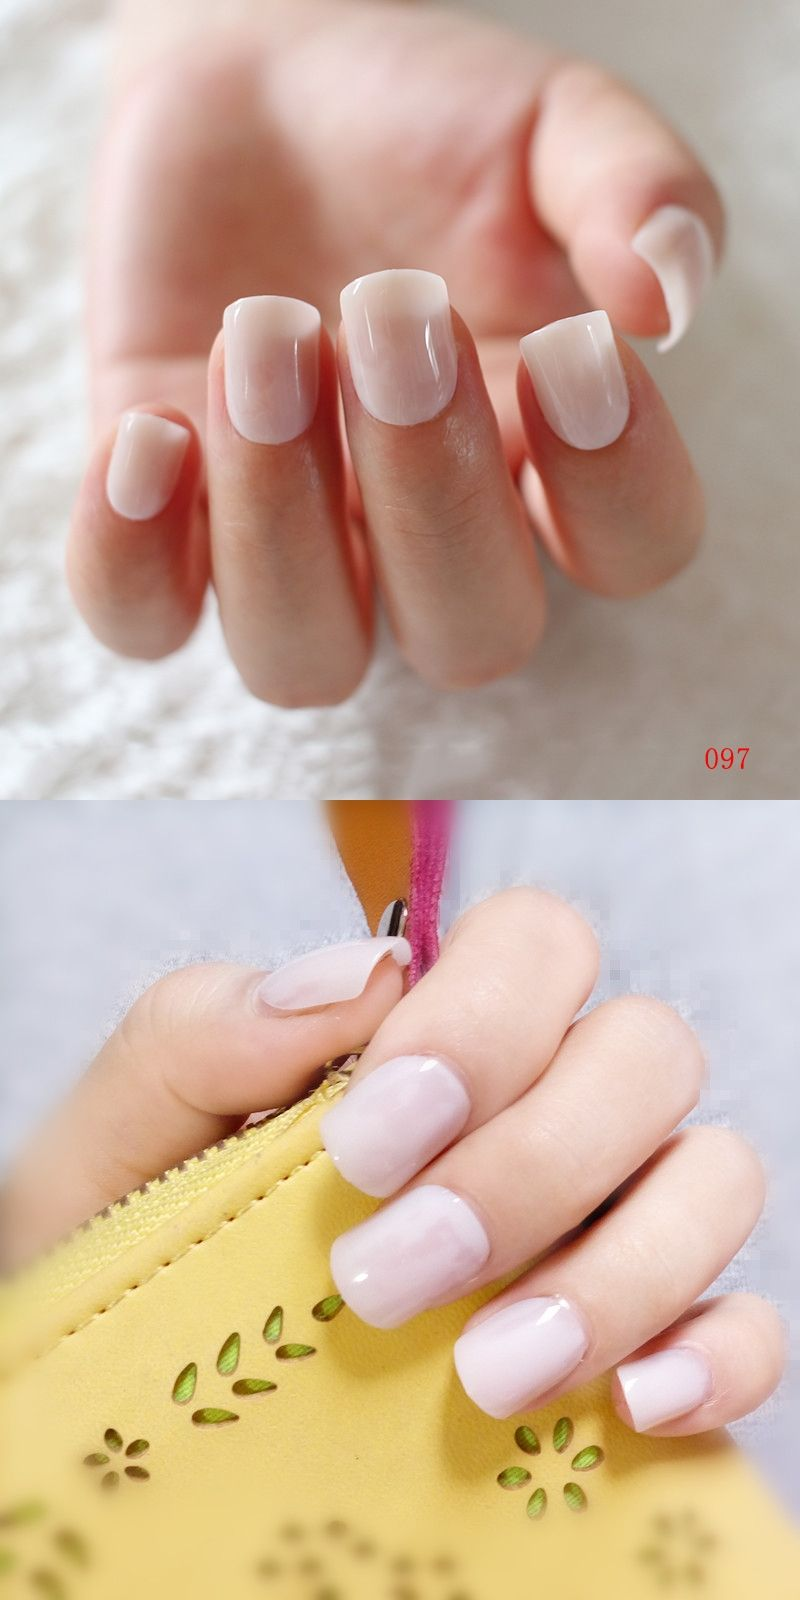 Candy Flat Fake Nails Natural Light Pink Artificial False Nail Tips ...